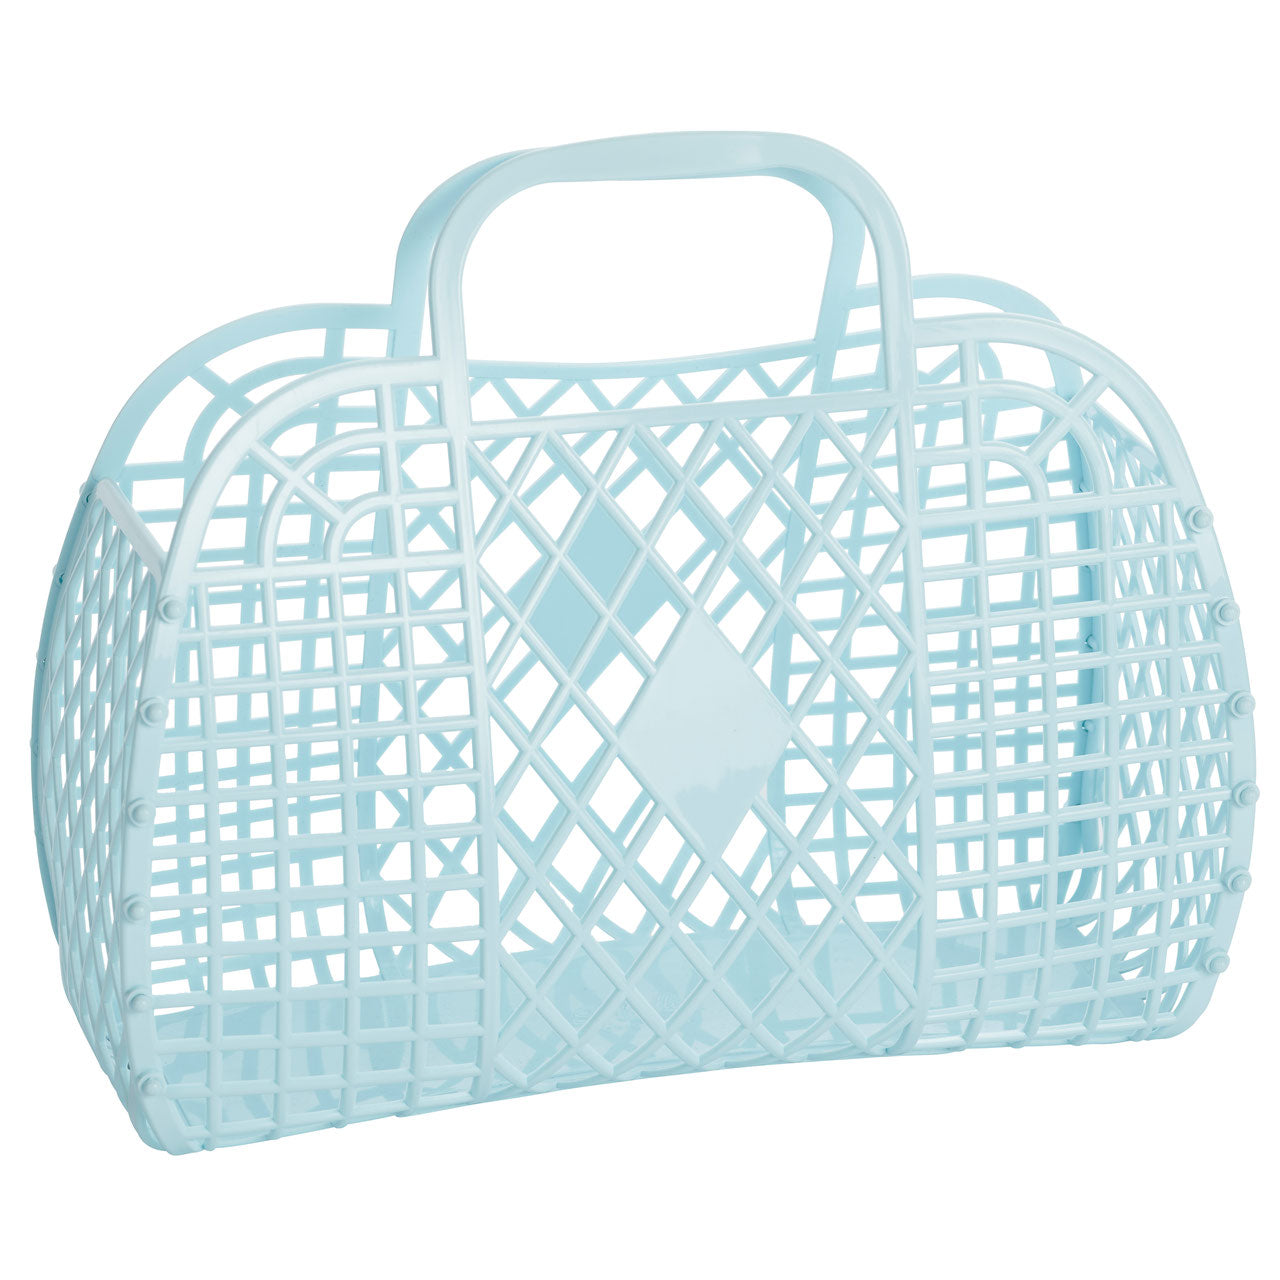 Retro Jelly Basket in Blue